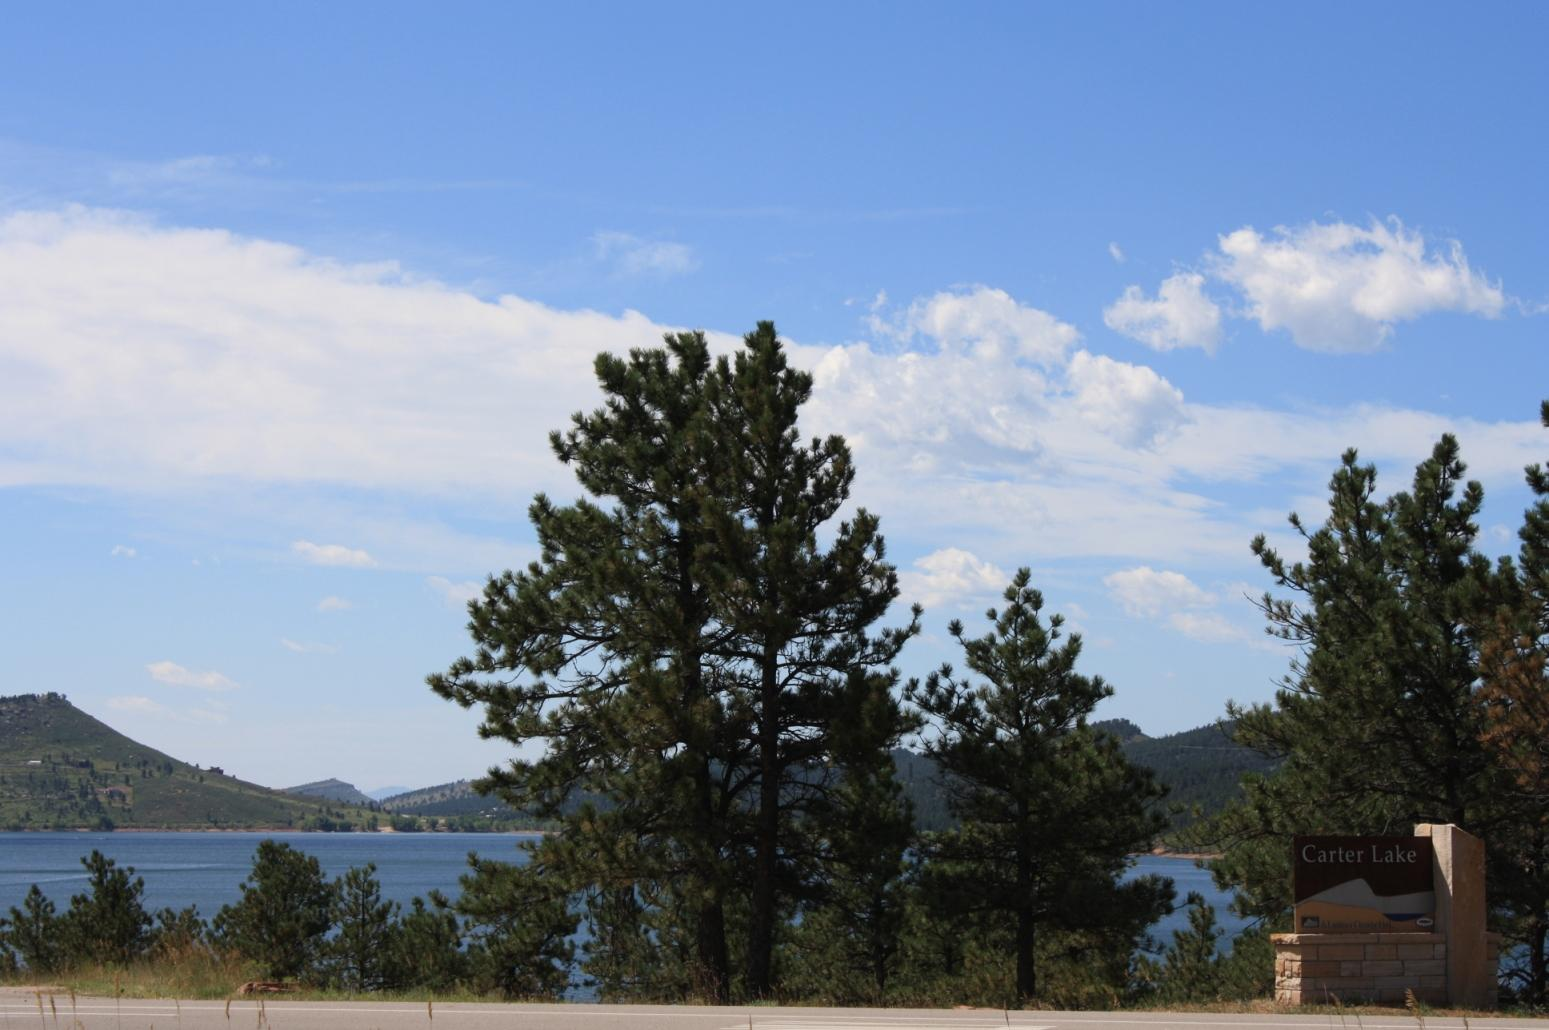 Carter Lake Colorado Camping Reservations Reserveamerica